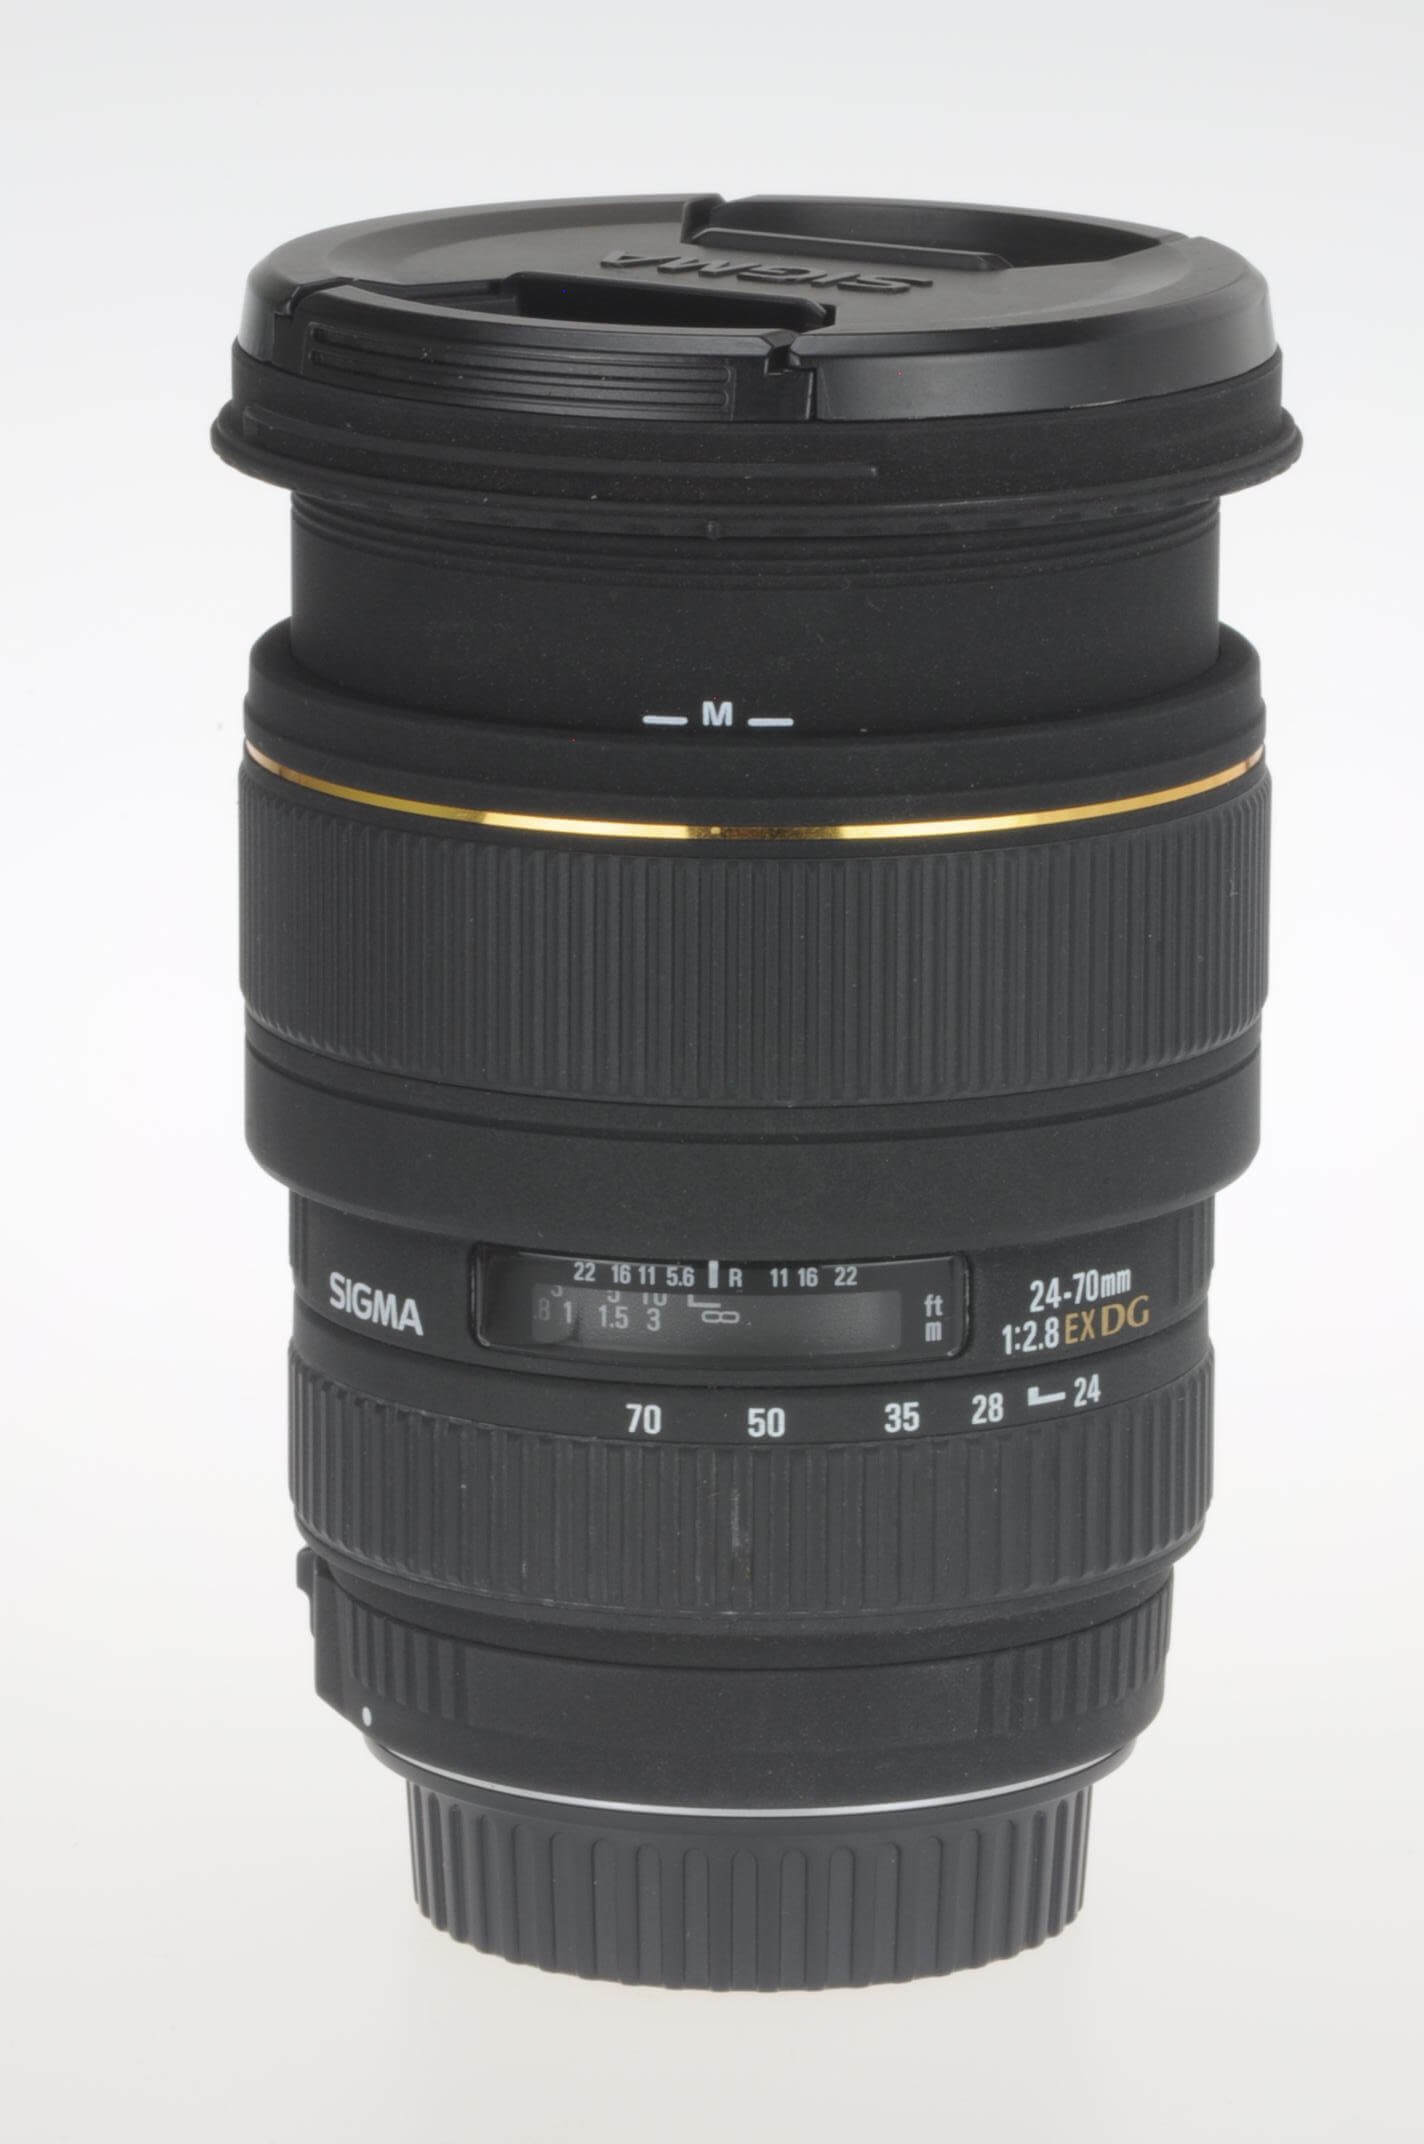 Sigma 24-70mm f2.8 EX DG lens, Canon EOS fitting